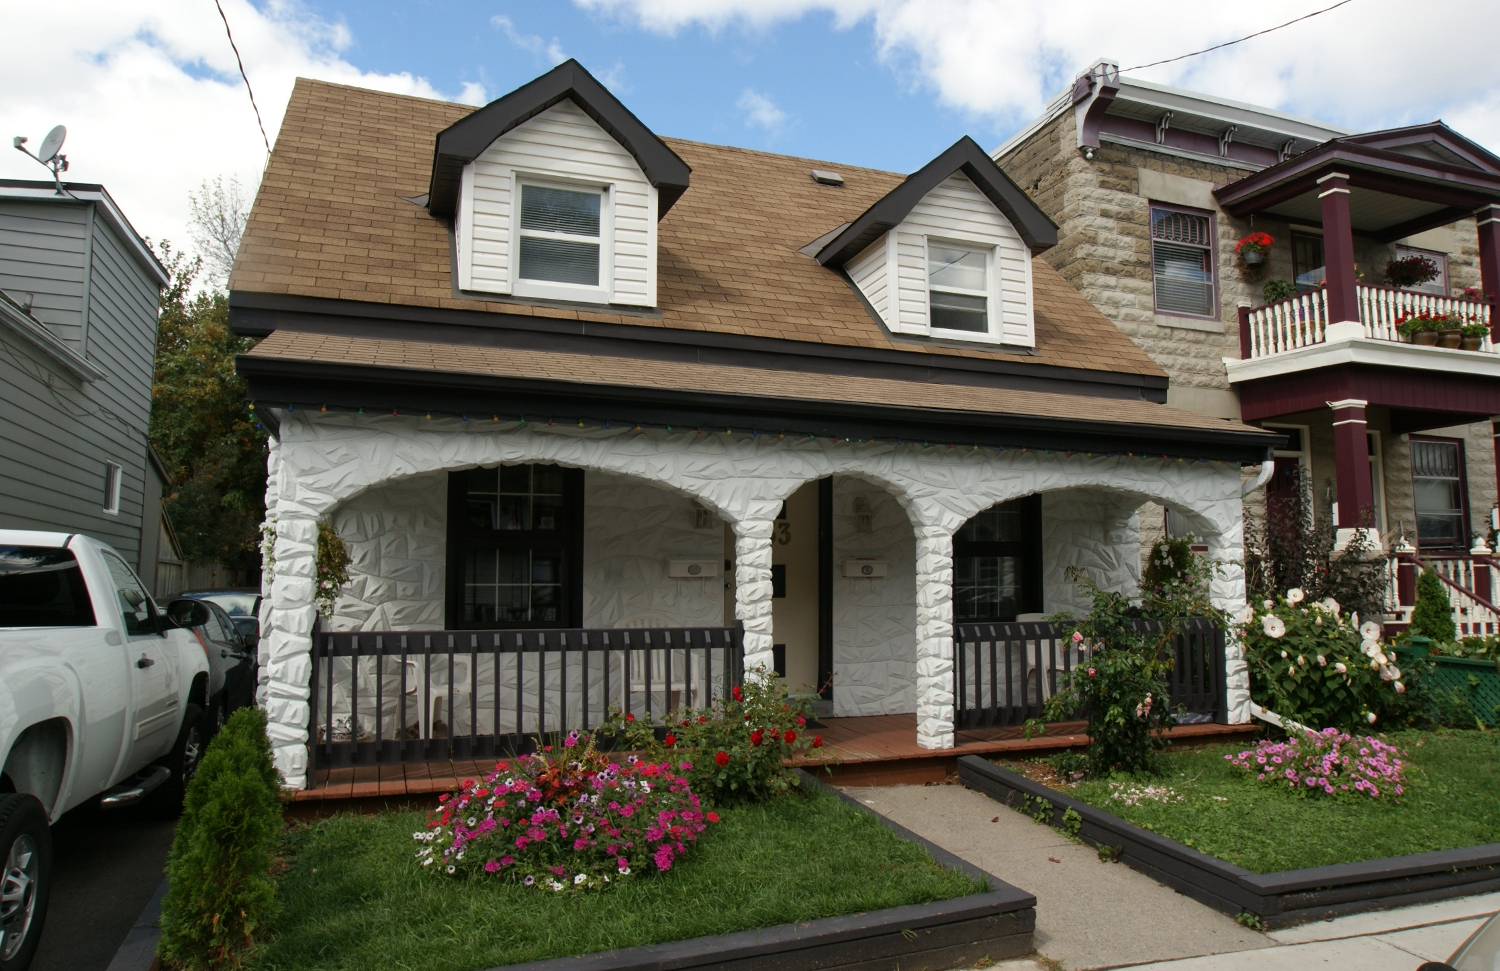 153 Guigues Ave – Sold January 2017